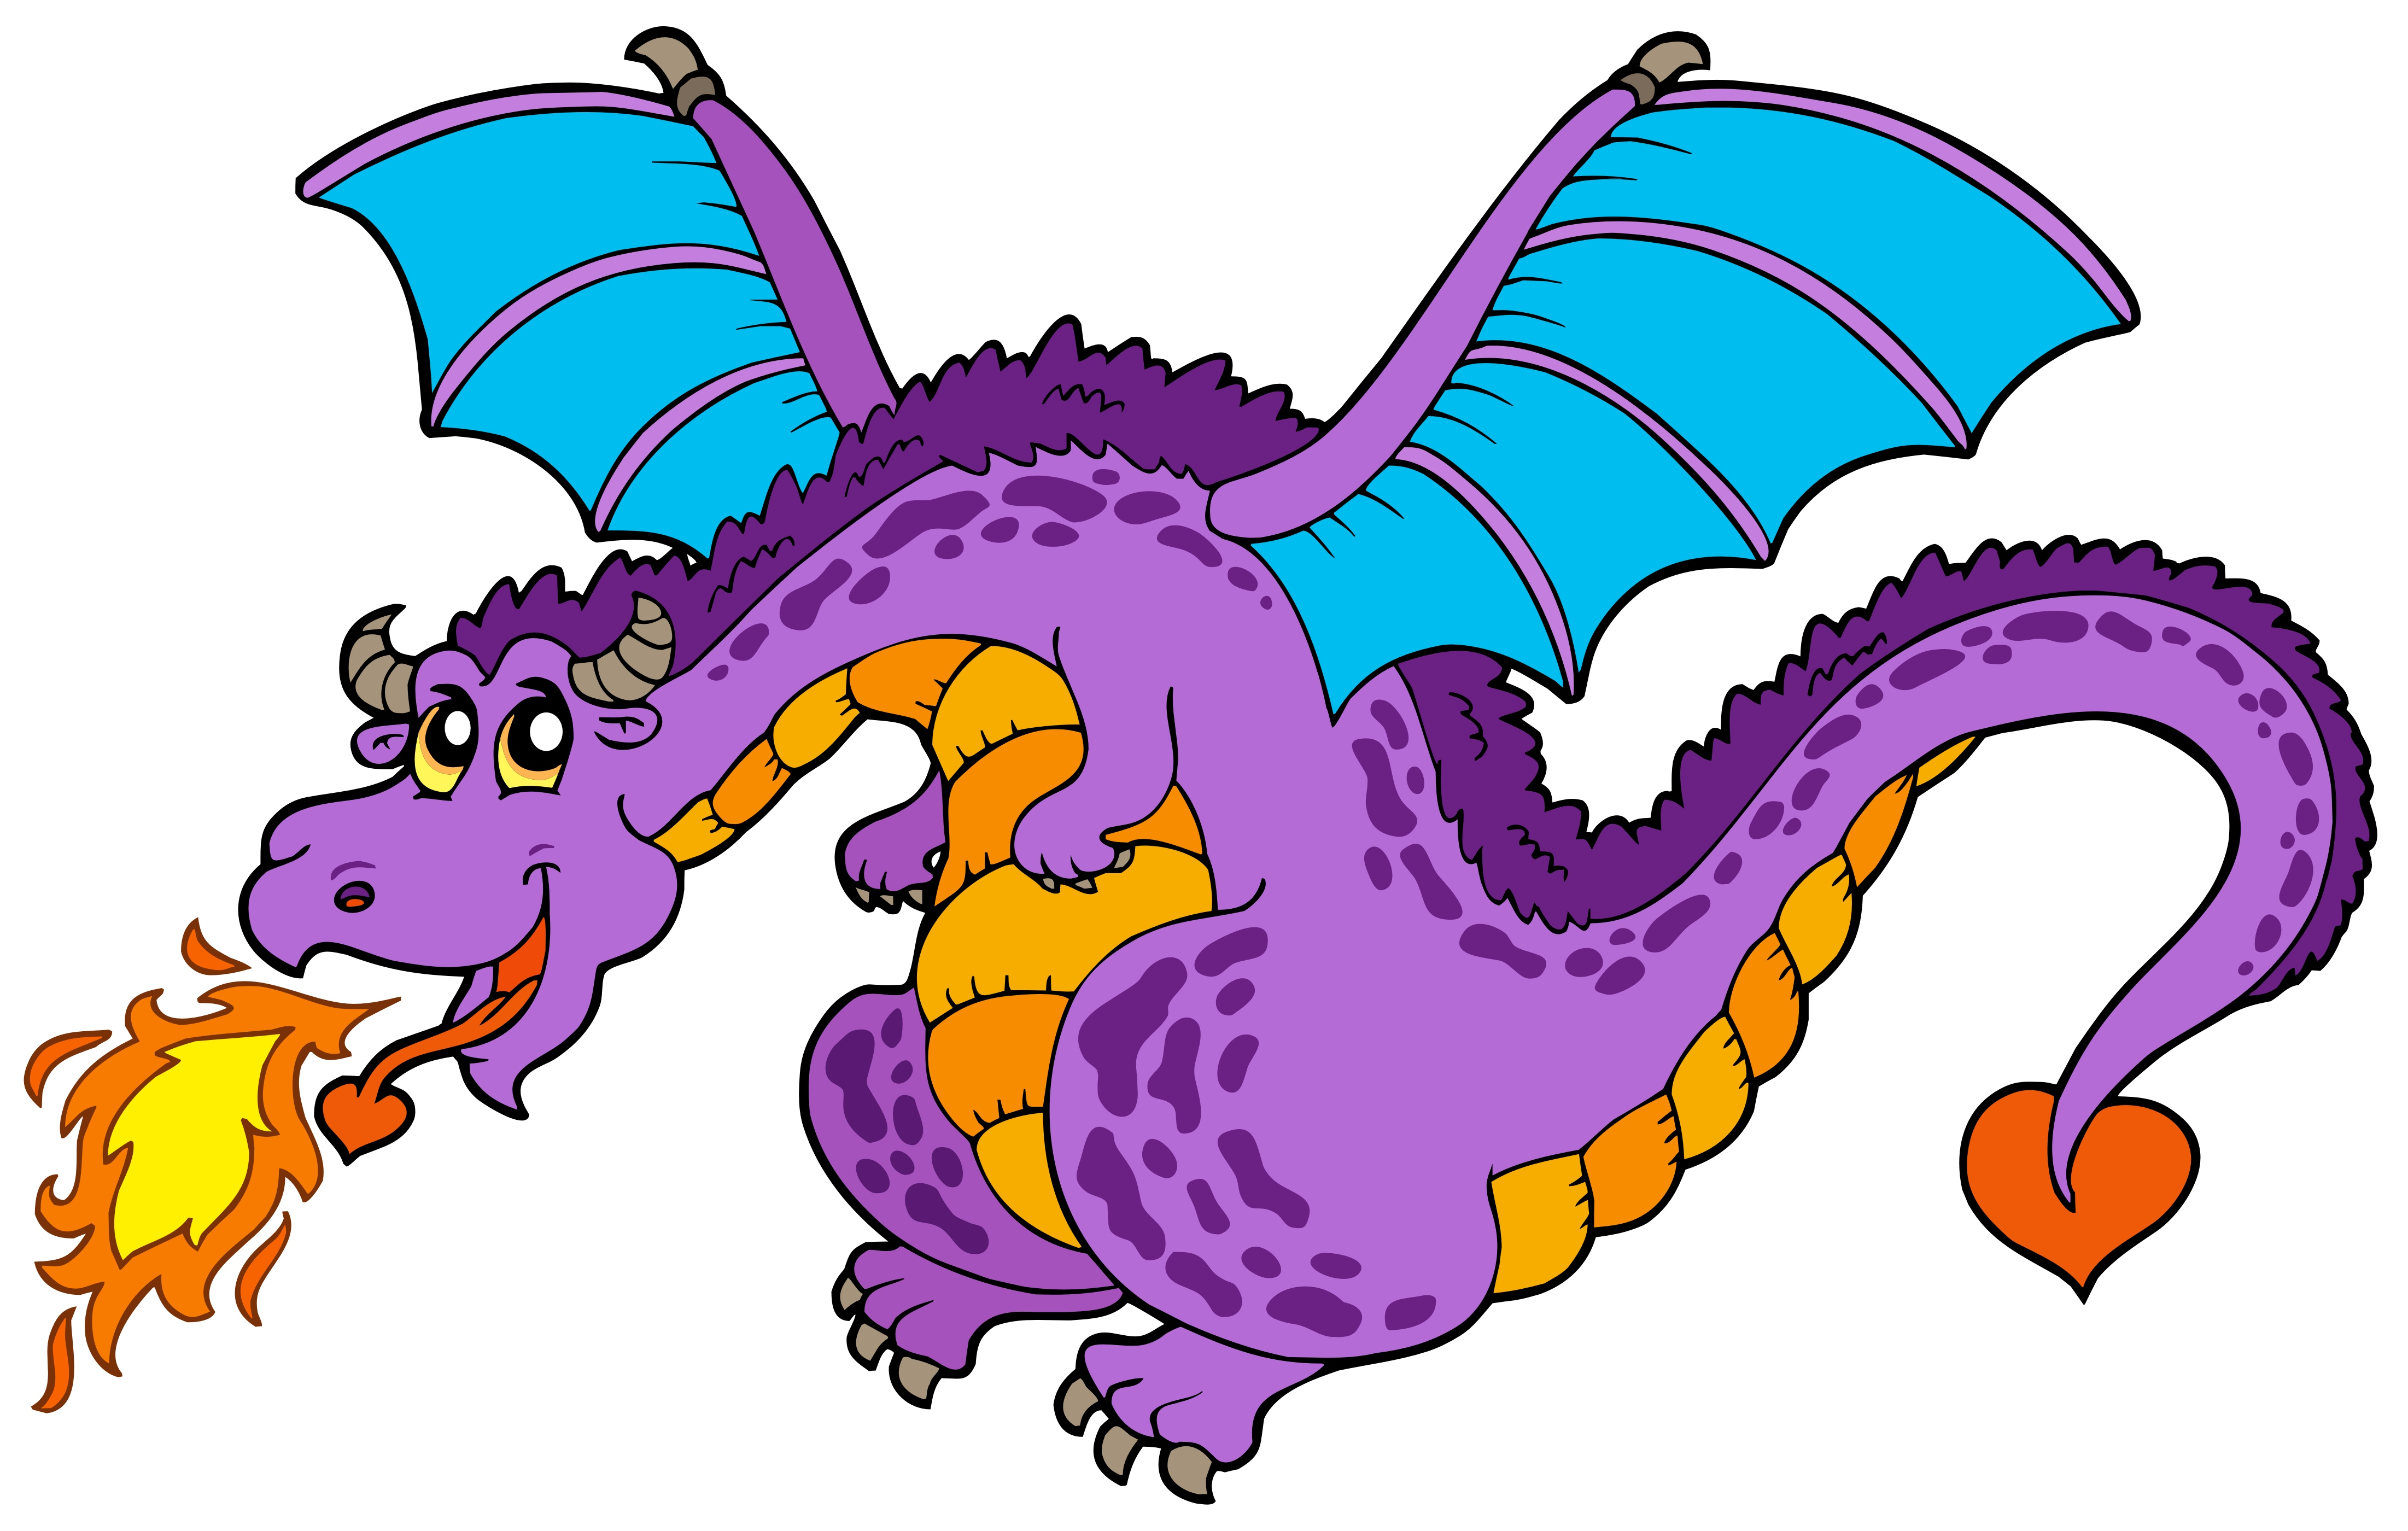 Free images for children. Clipart dragon childrens